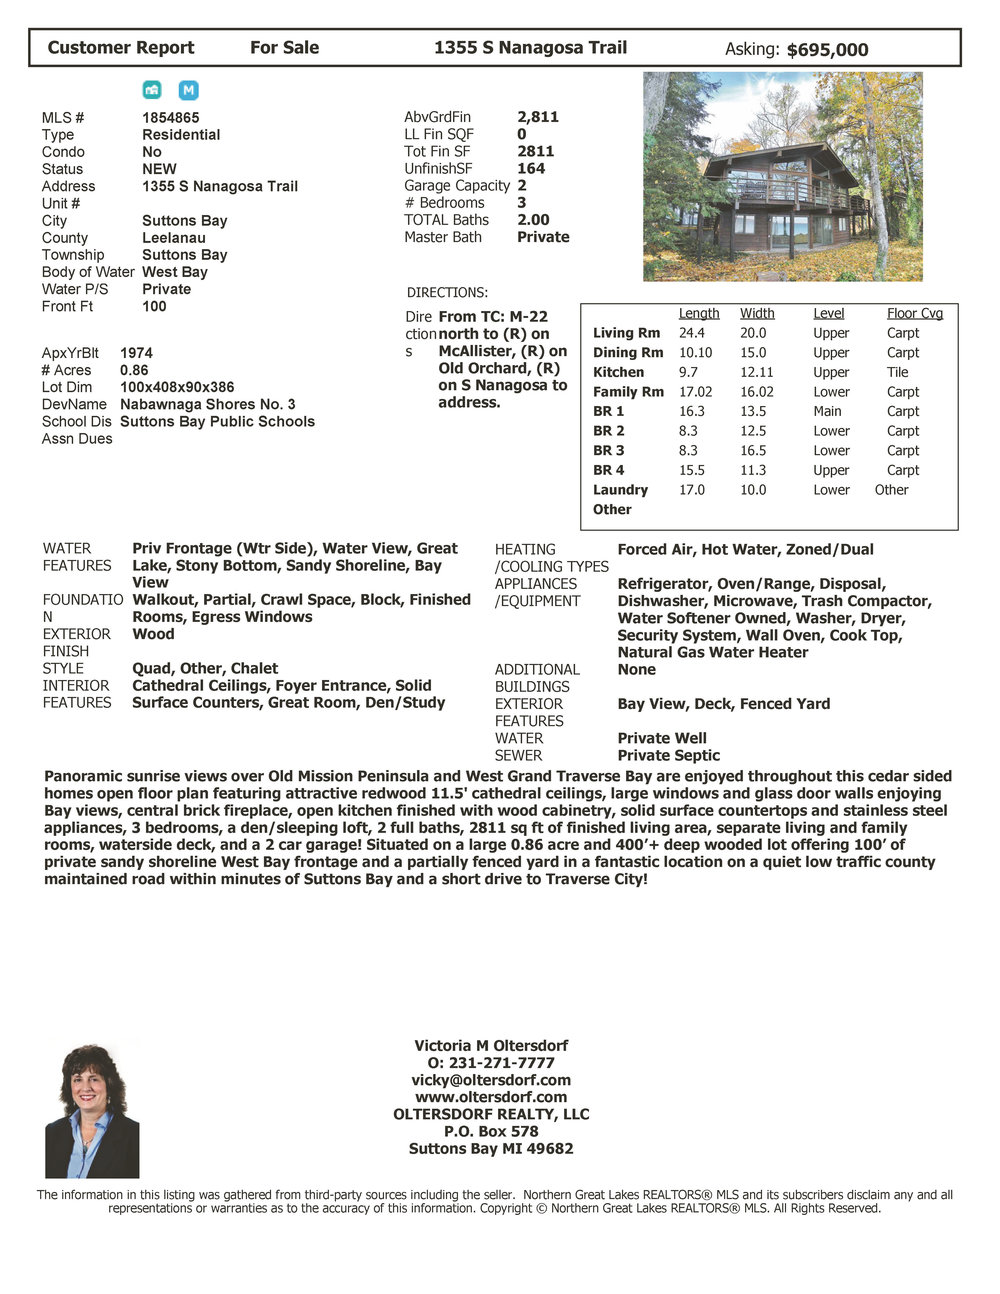 1355 S Nanagosa Trail Suttons Bay – FOR SALE by Oltersdorf Realty LLC - Marketing Packet (9).jpg